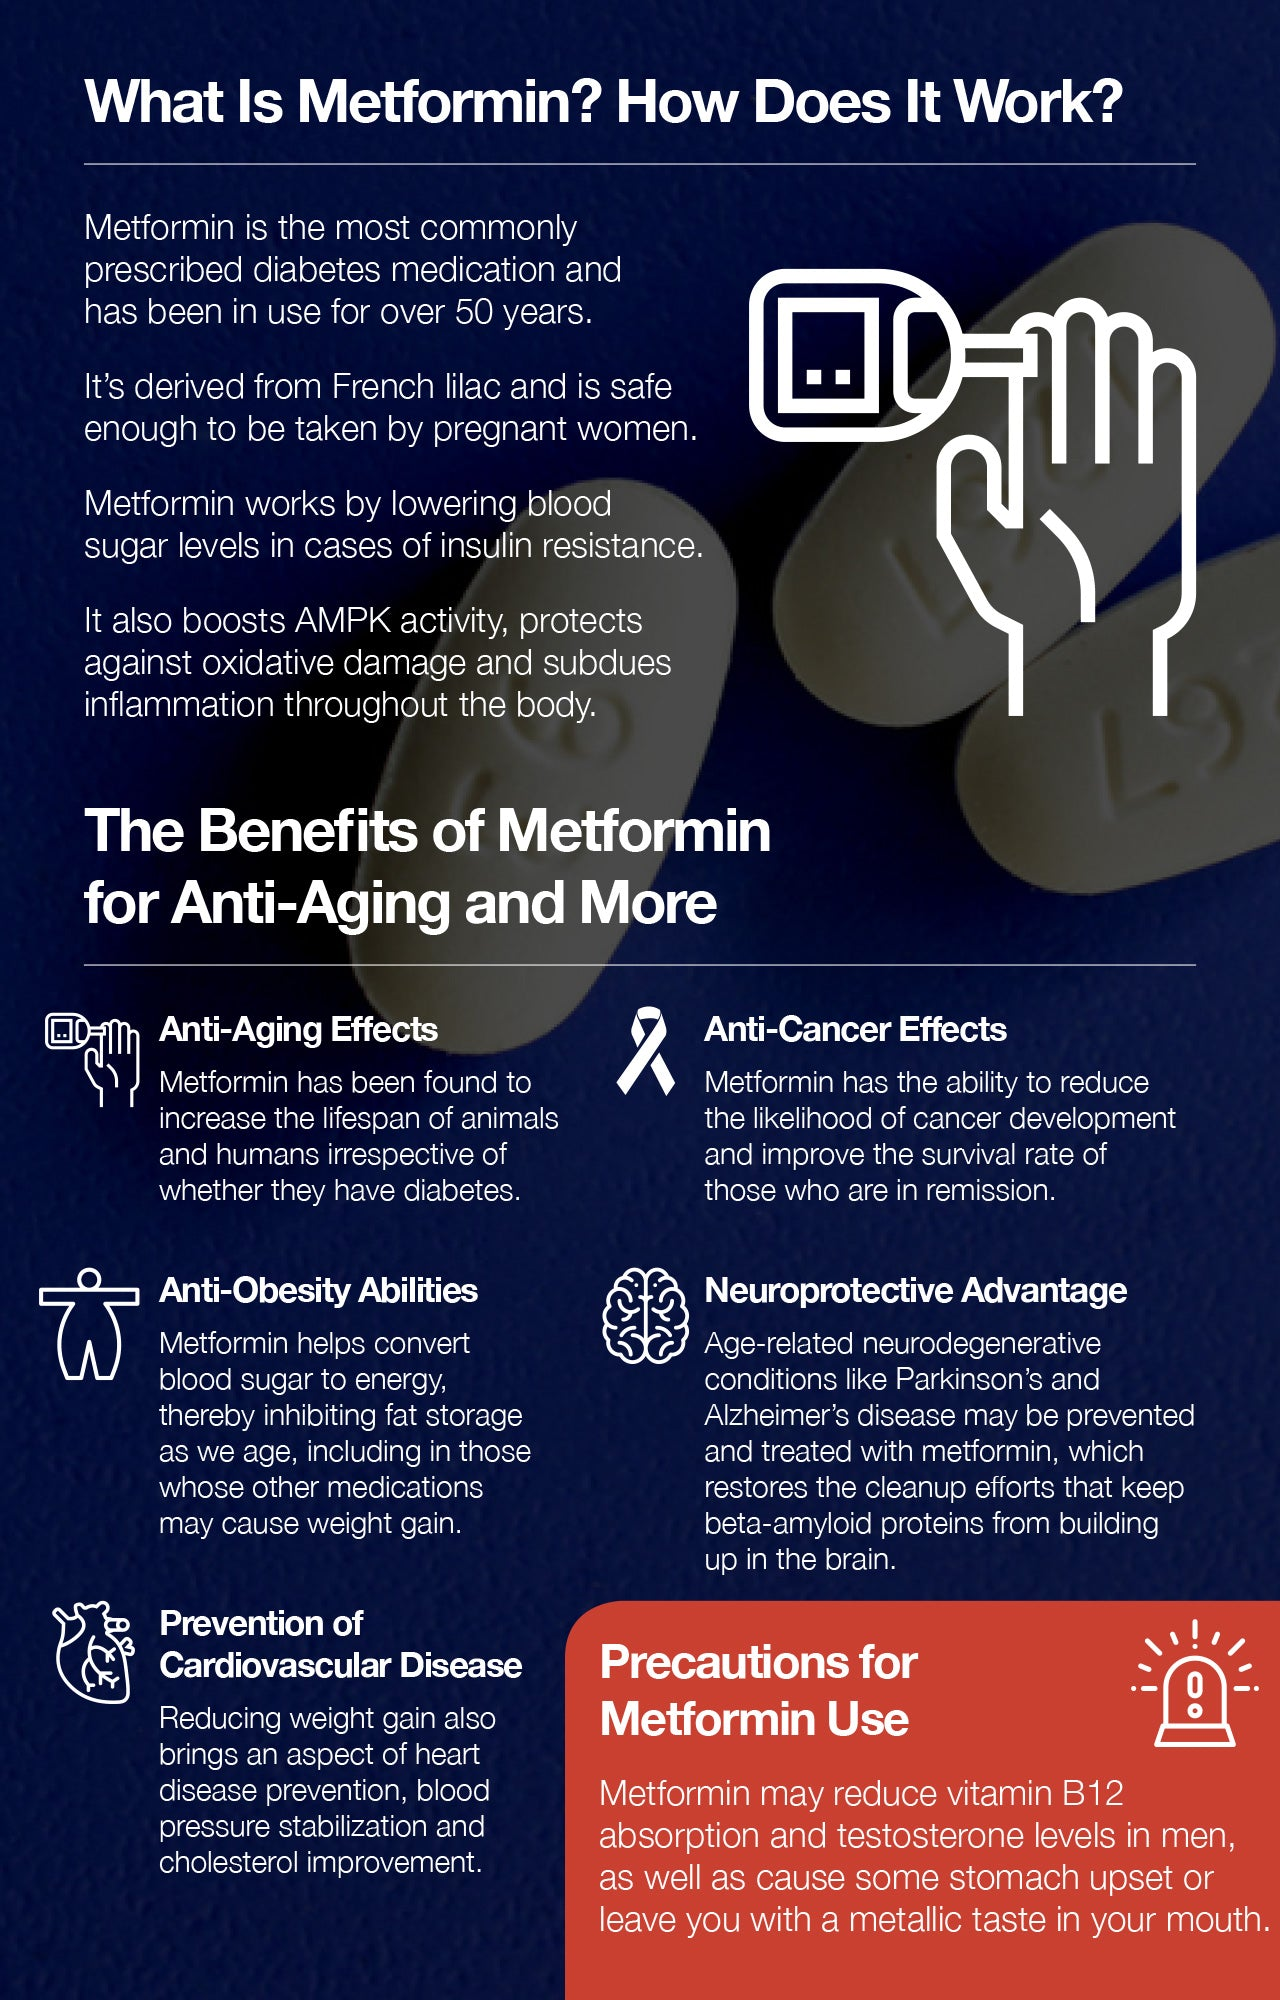 What Is Metformin? How Does It Work?